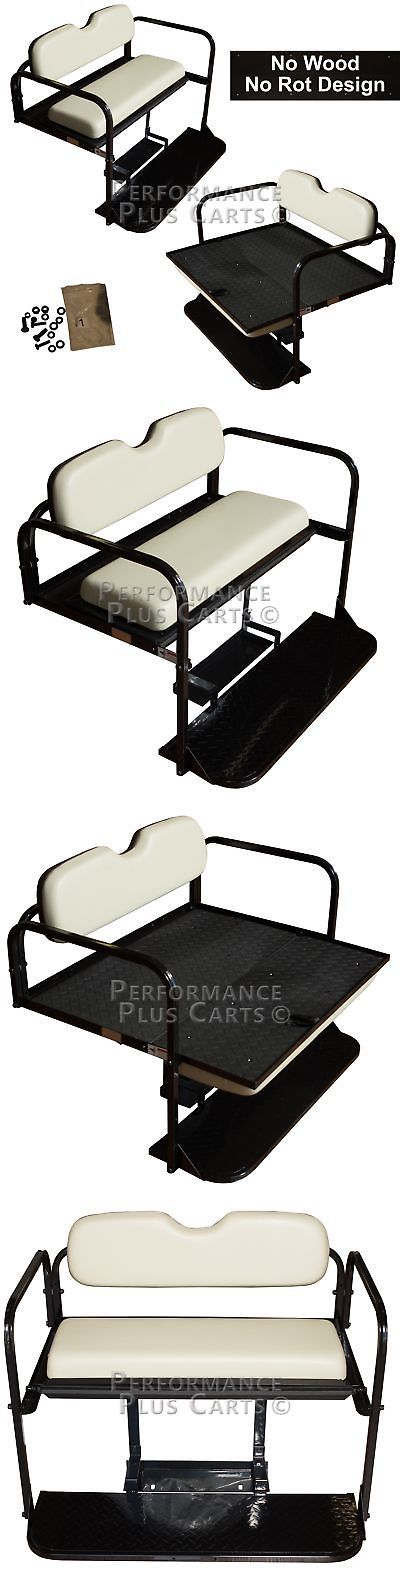 Push-Pull Golf Carts 75207: Yamaha Drive G29 Golf Cart Flip Folding Rear Back Seat Kit - Stone Cushions -> BUY IT NOW ONLY: $249.95 on eBay!